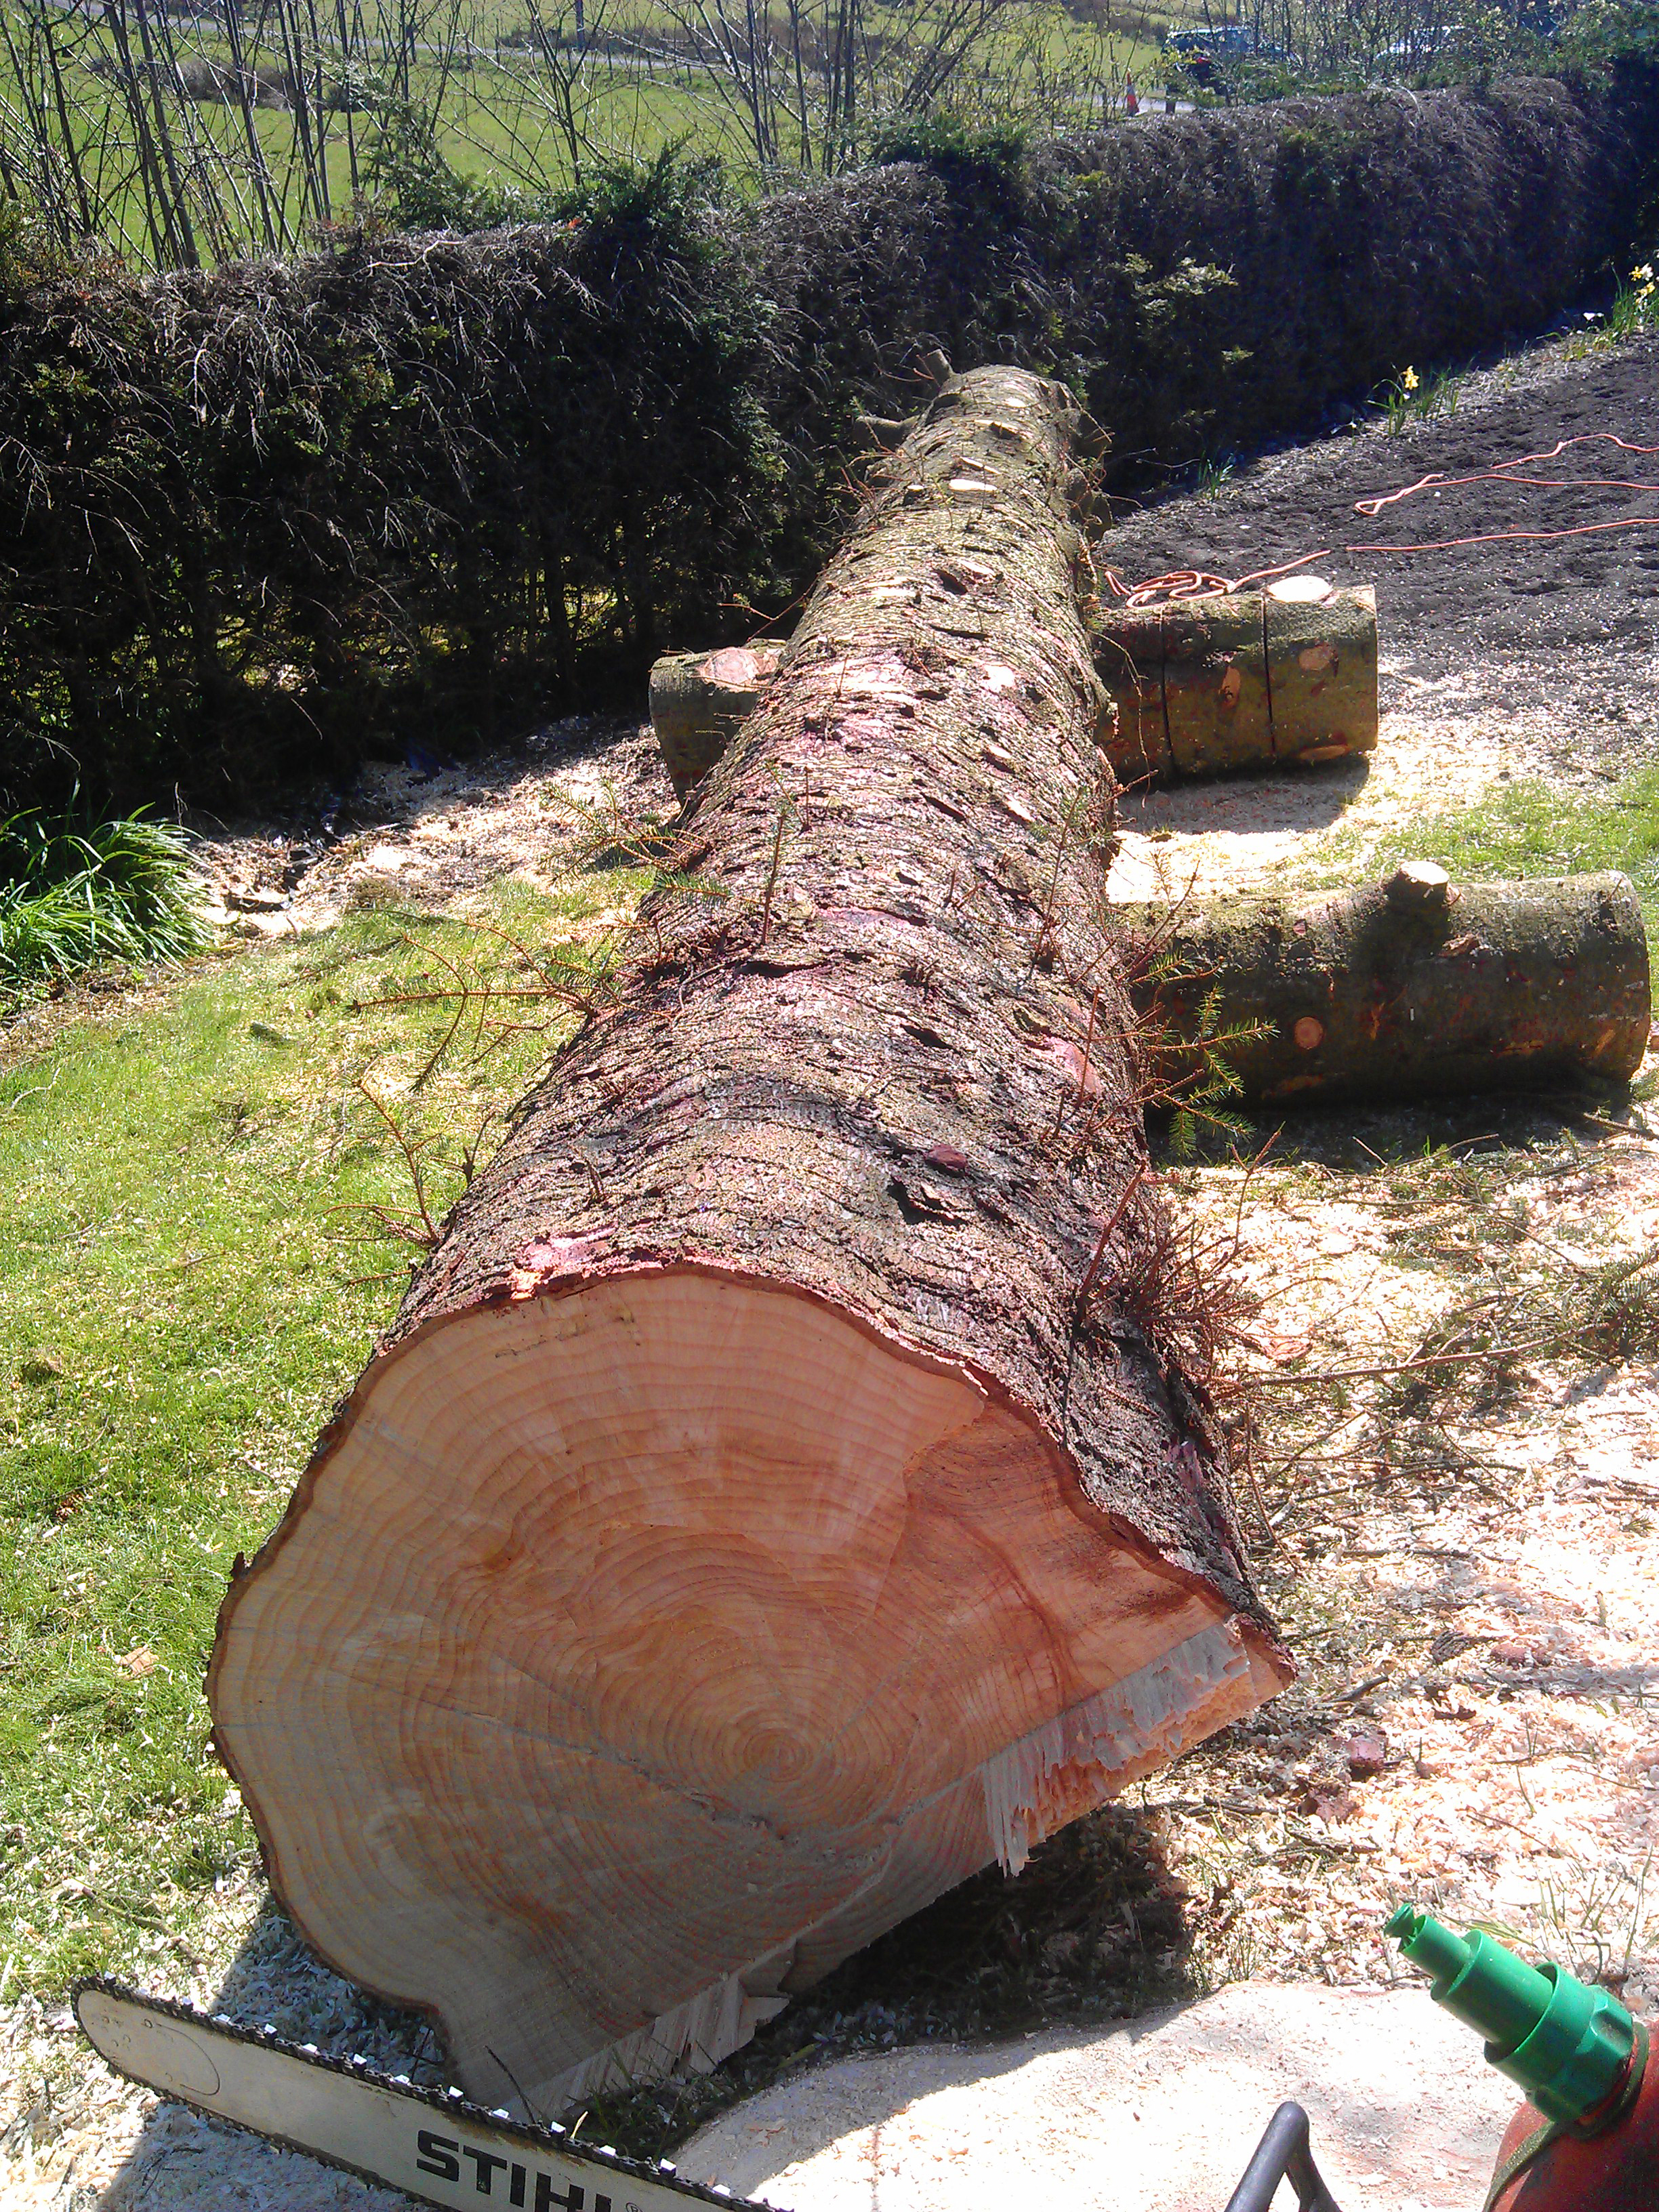 Sitka Spruce Tree Logged